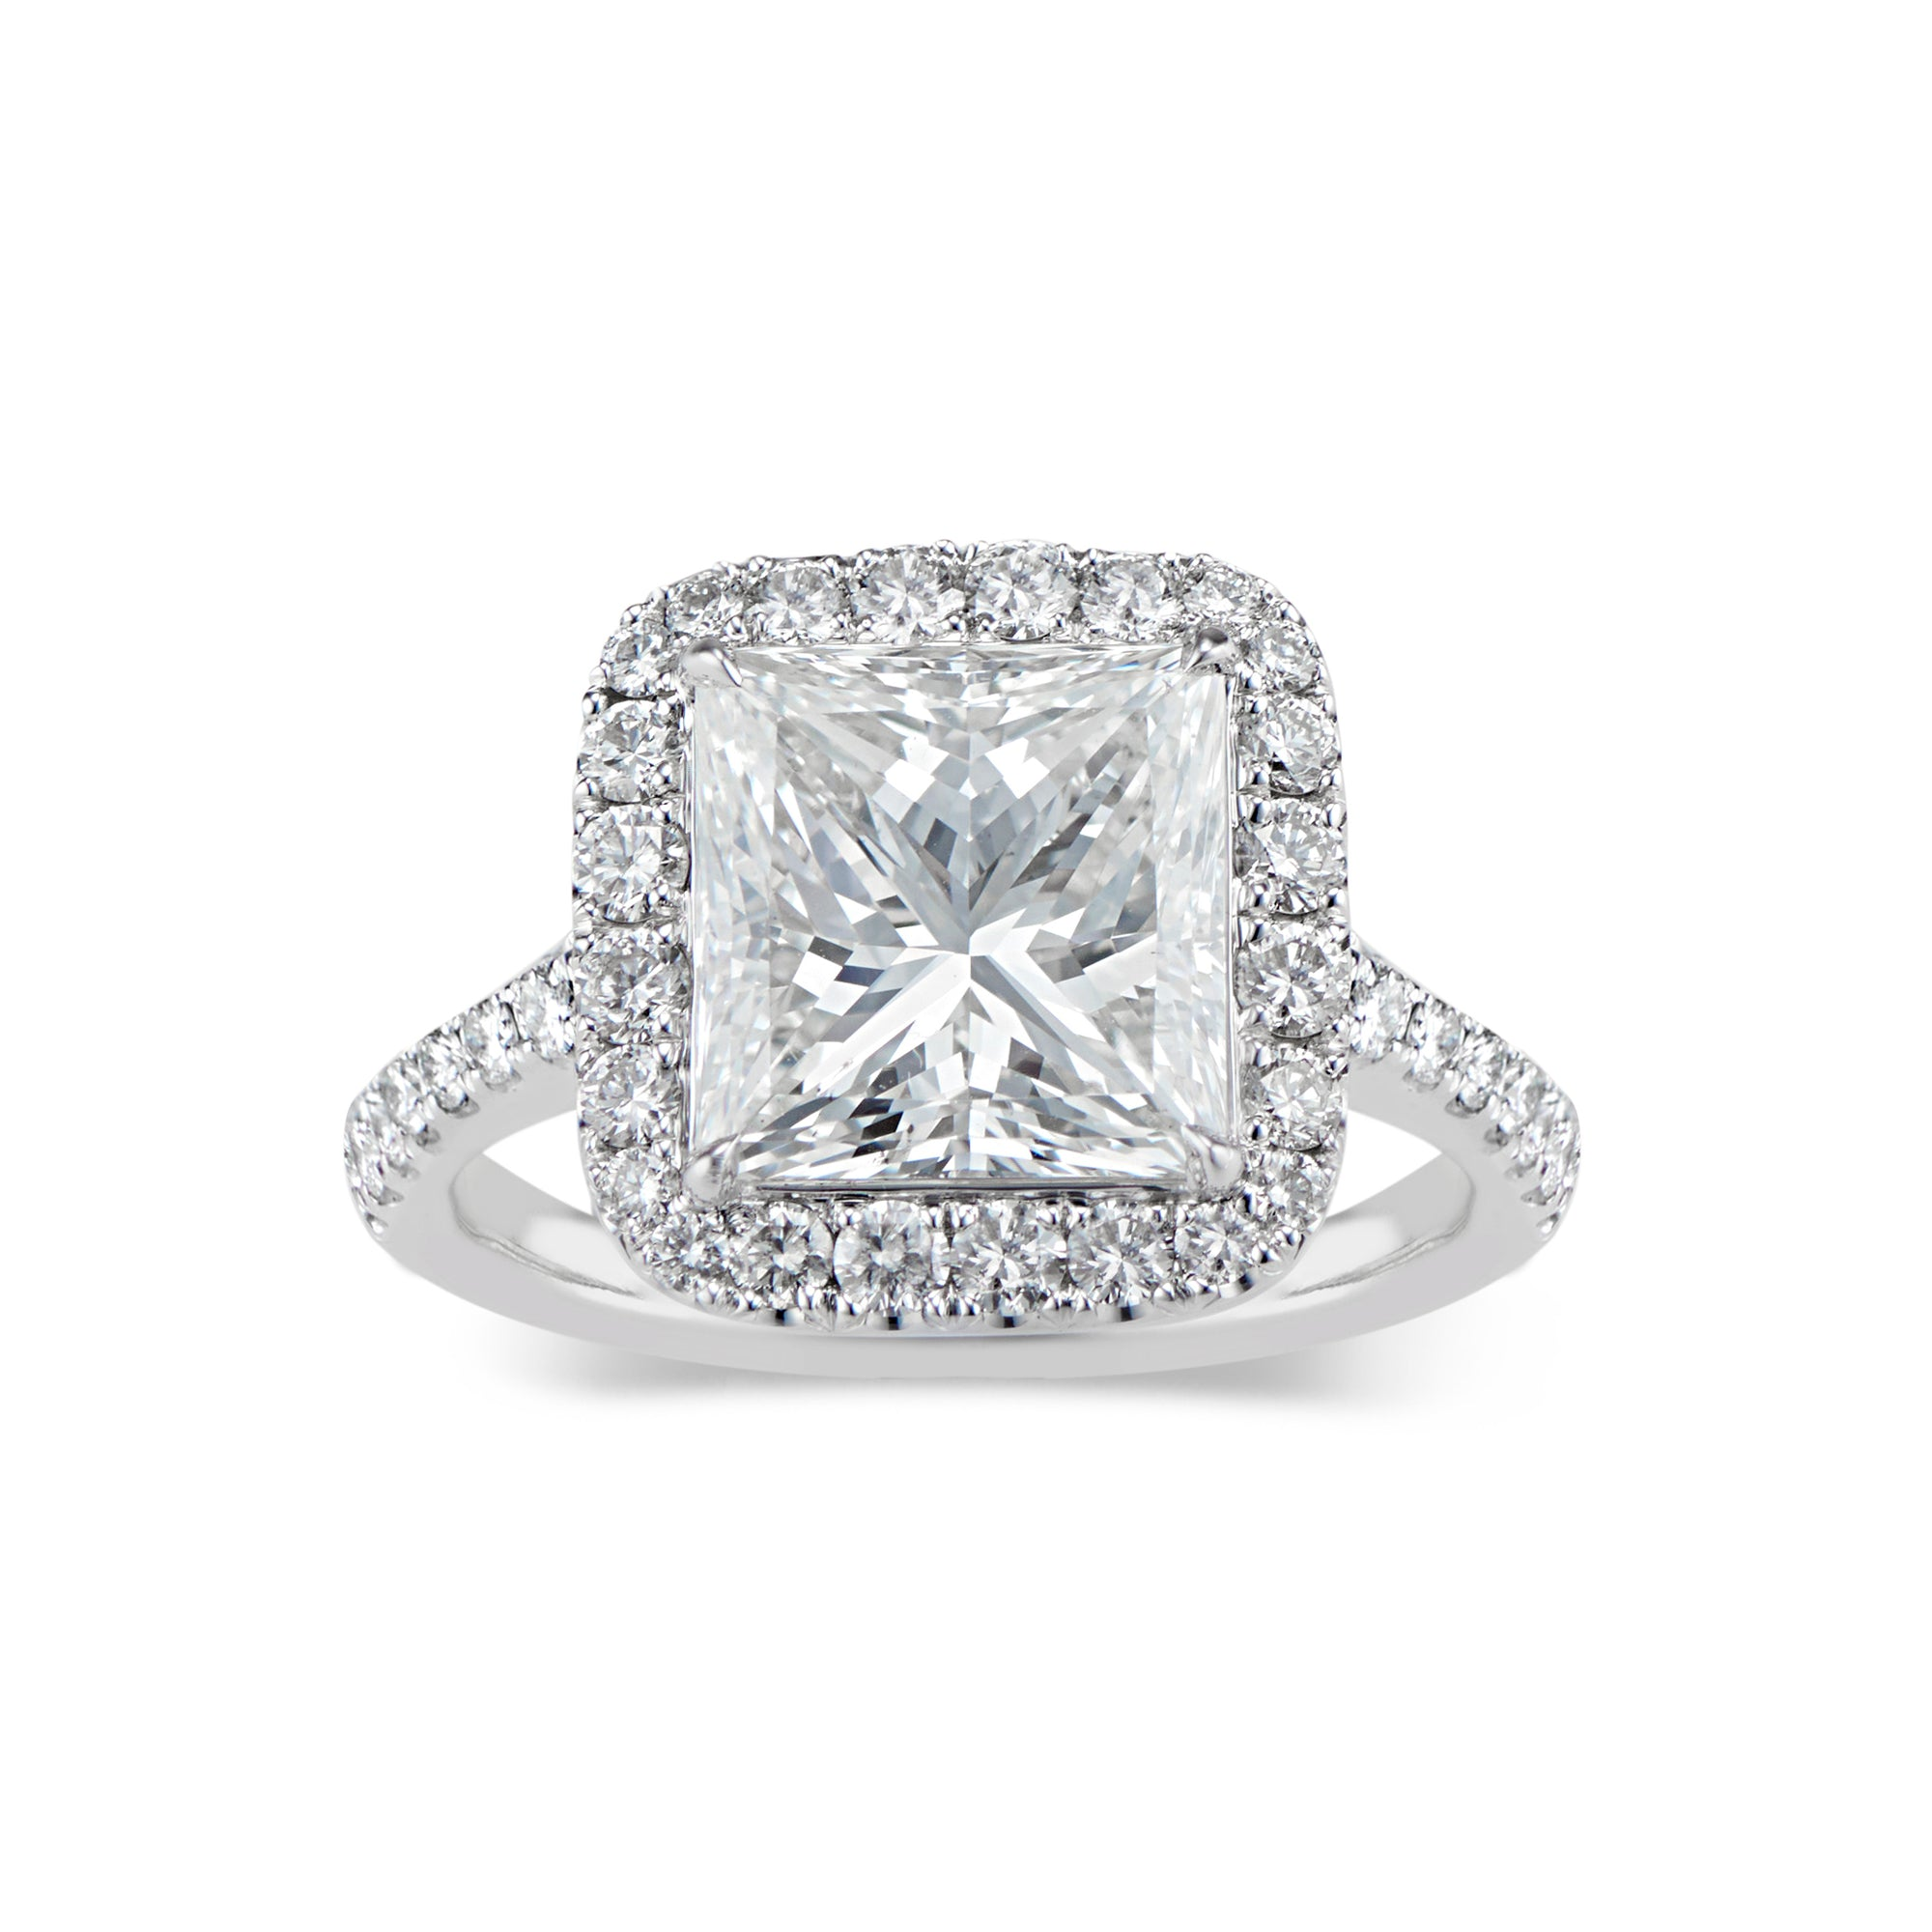 Princess-Cut Diamond Halo Engagement Ring